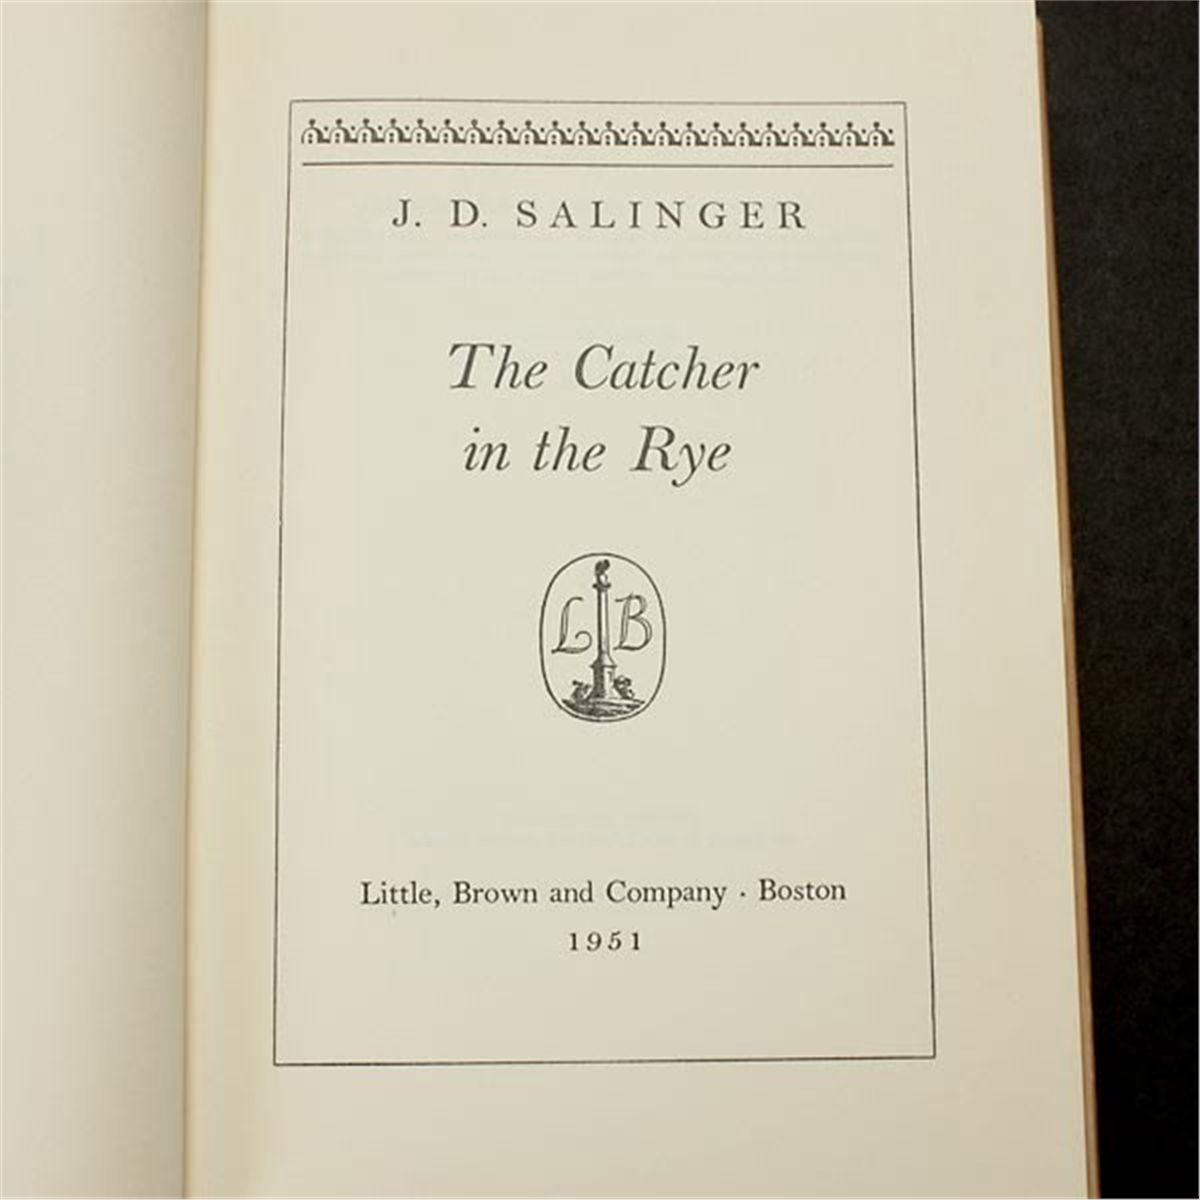 catcher on the rye by j d The catcher in the rye by jd salinger and huckleberry finn by samuel clemens employ these characteristics, particularly using a constructive voice, symbolism, and a complex connected sequence of events, dealing with human experiences.